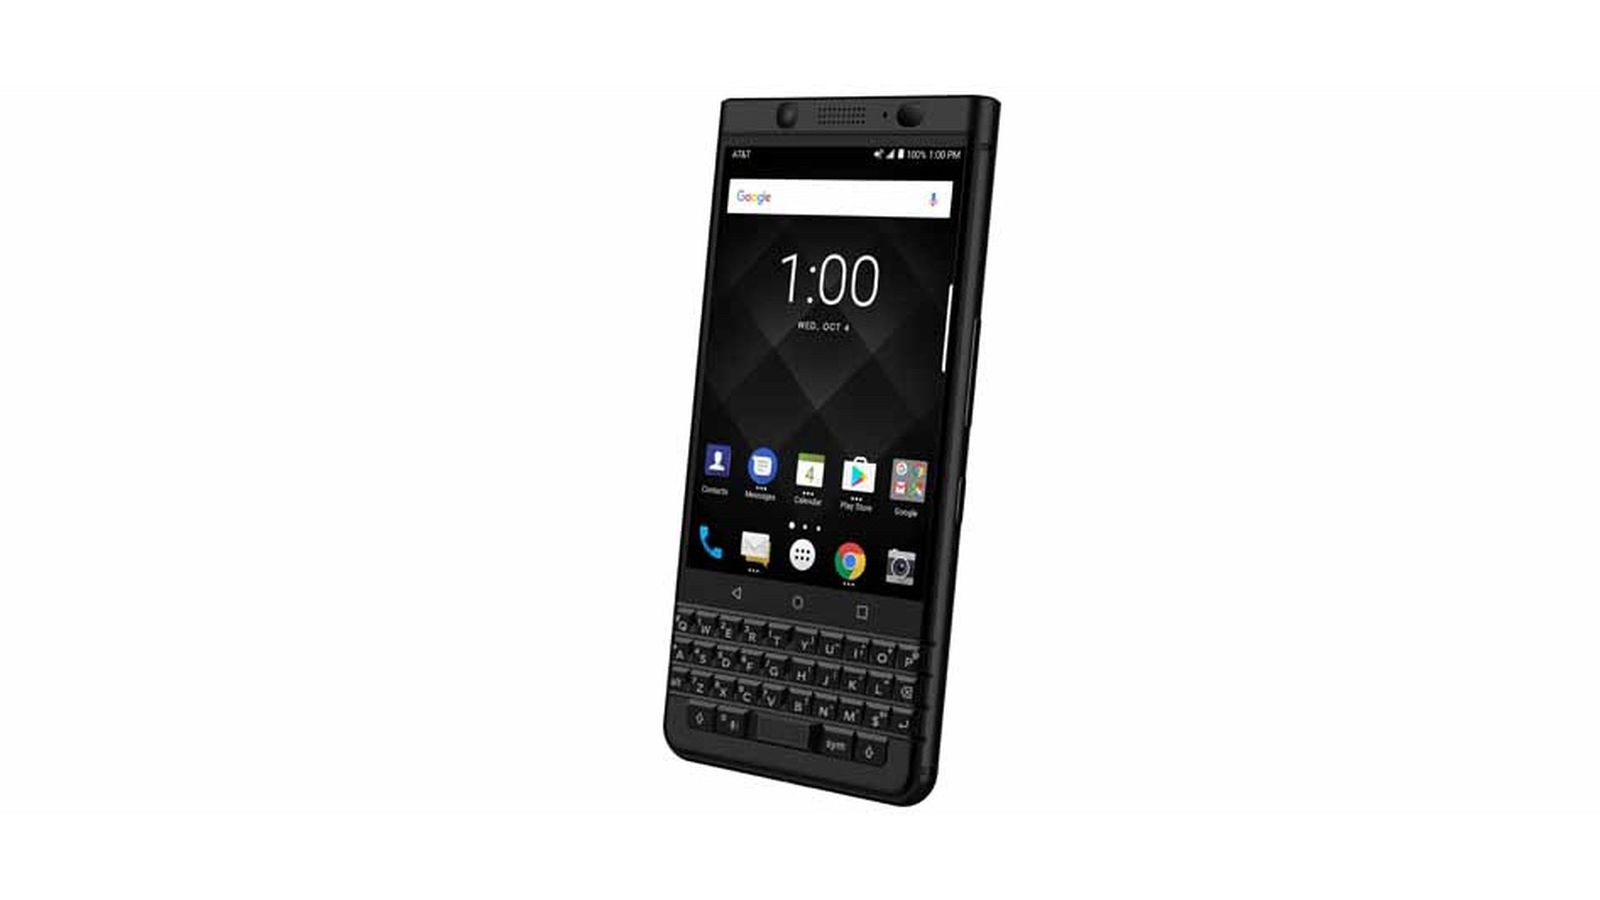 A space black version of BlackBerry